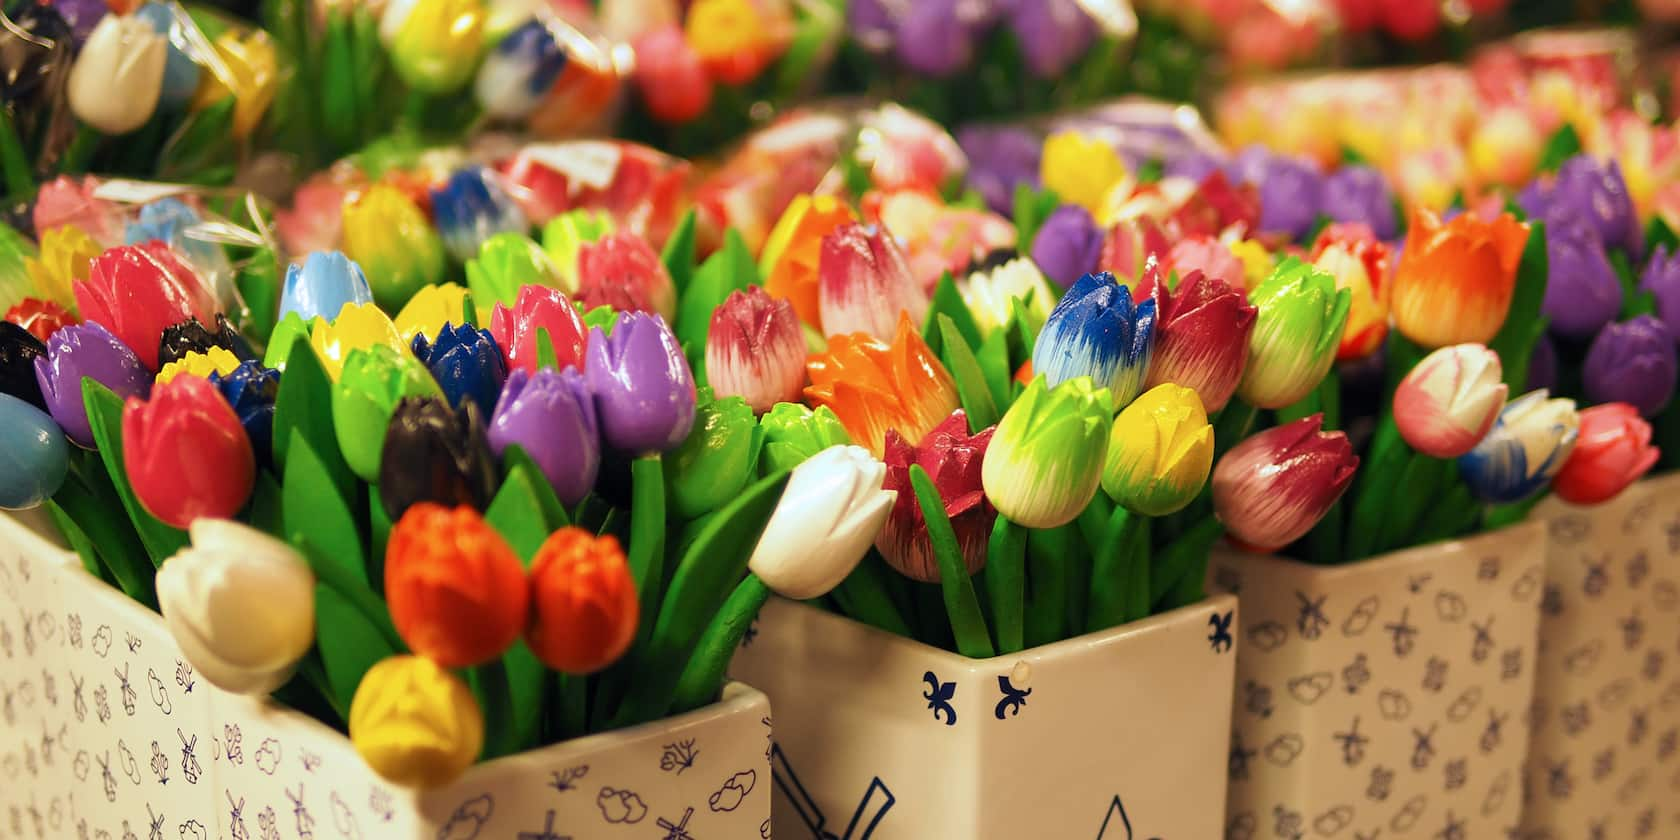 Several rows of ceramic vases filled with colorful artificial tulips